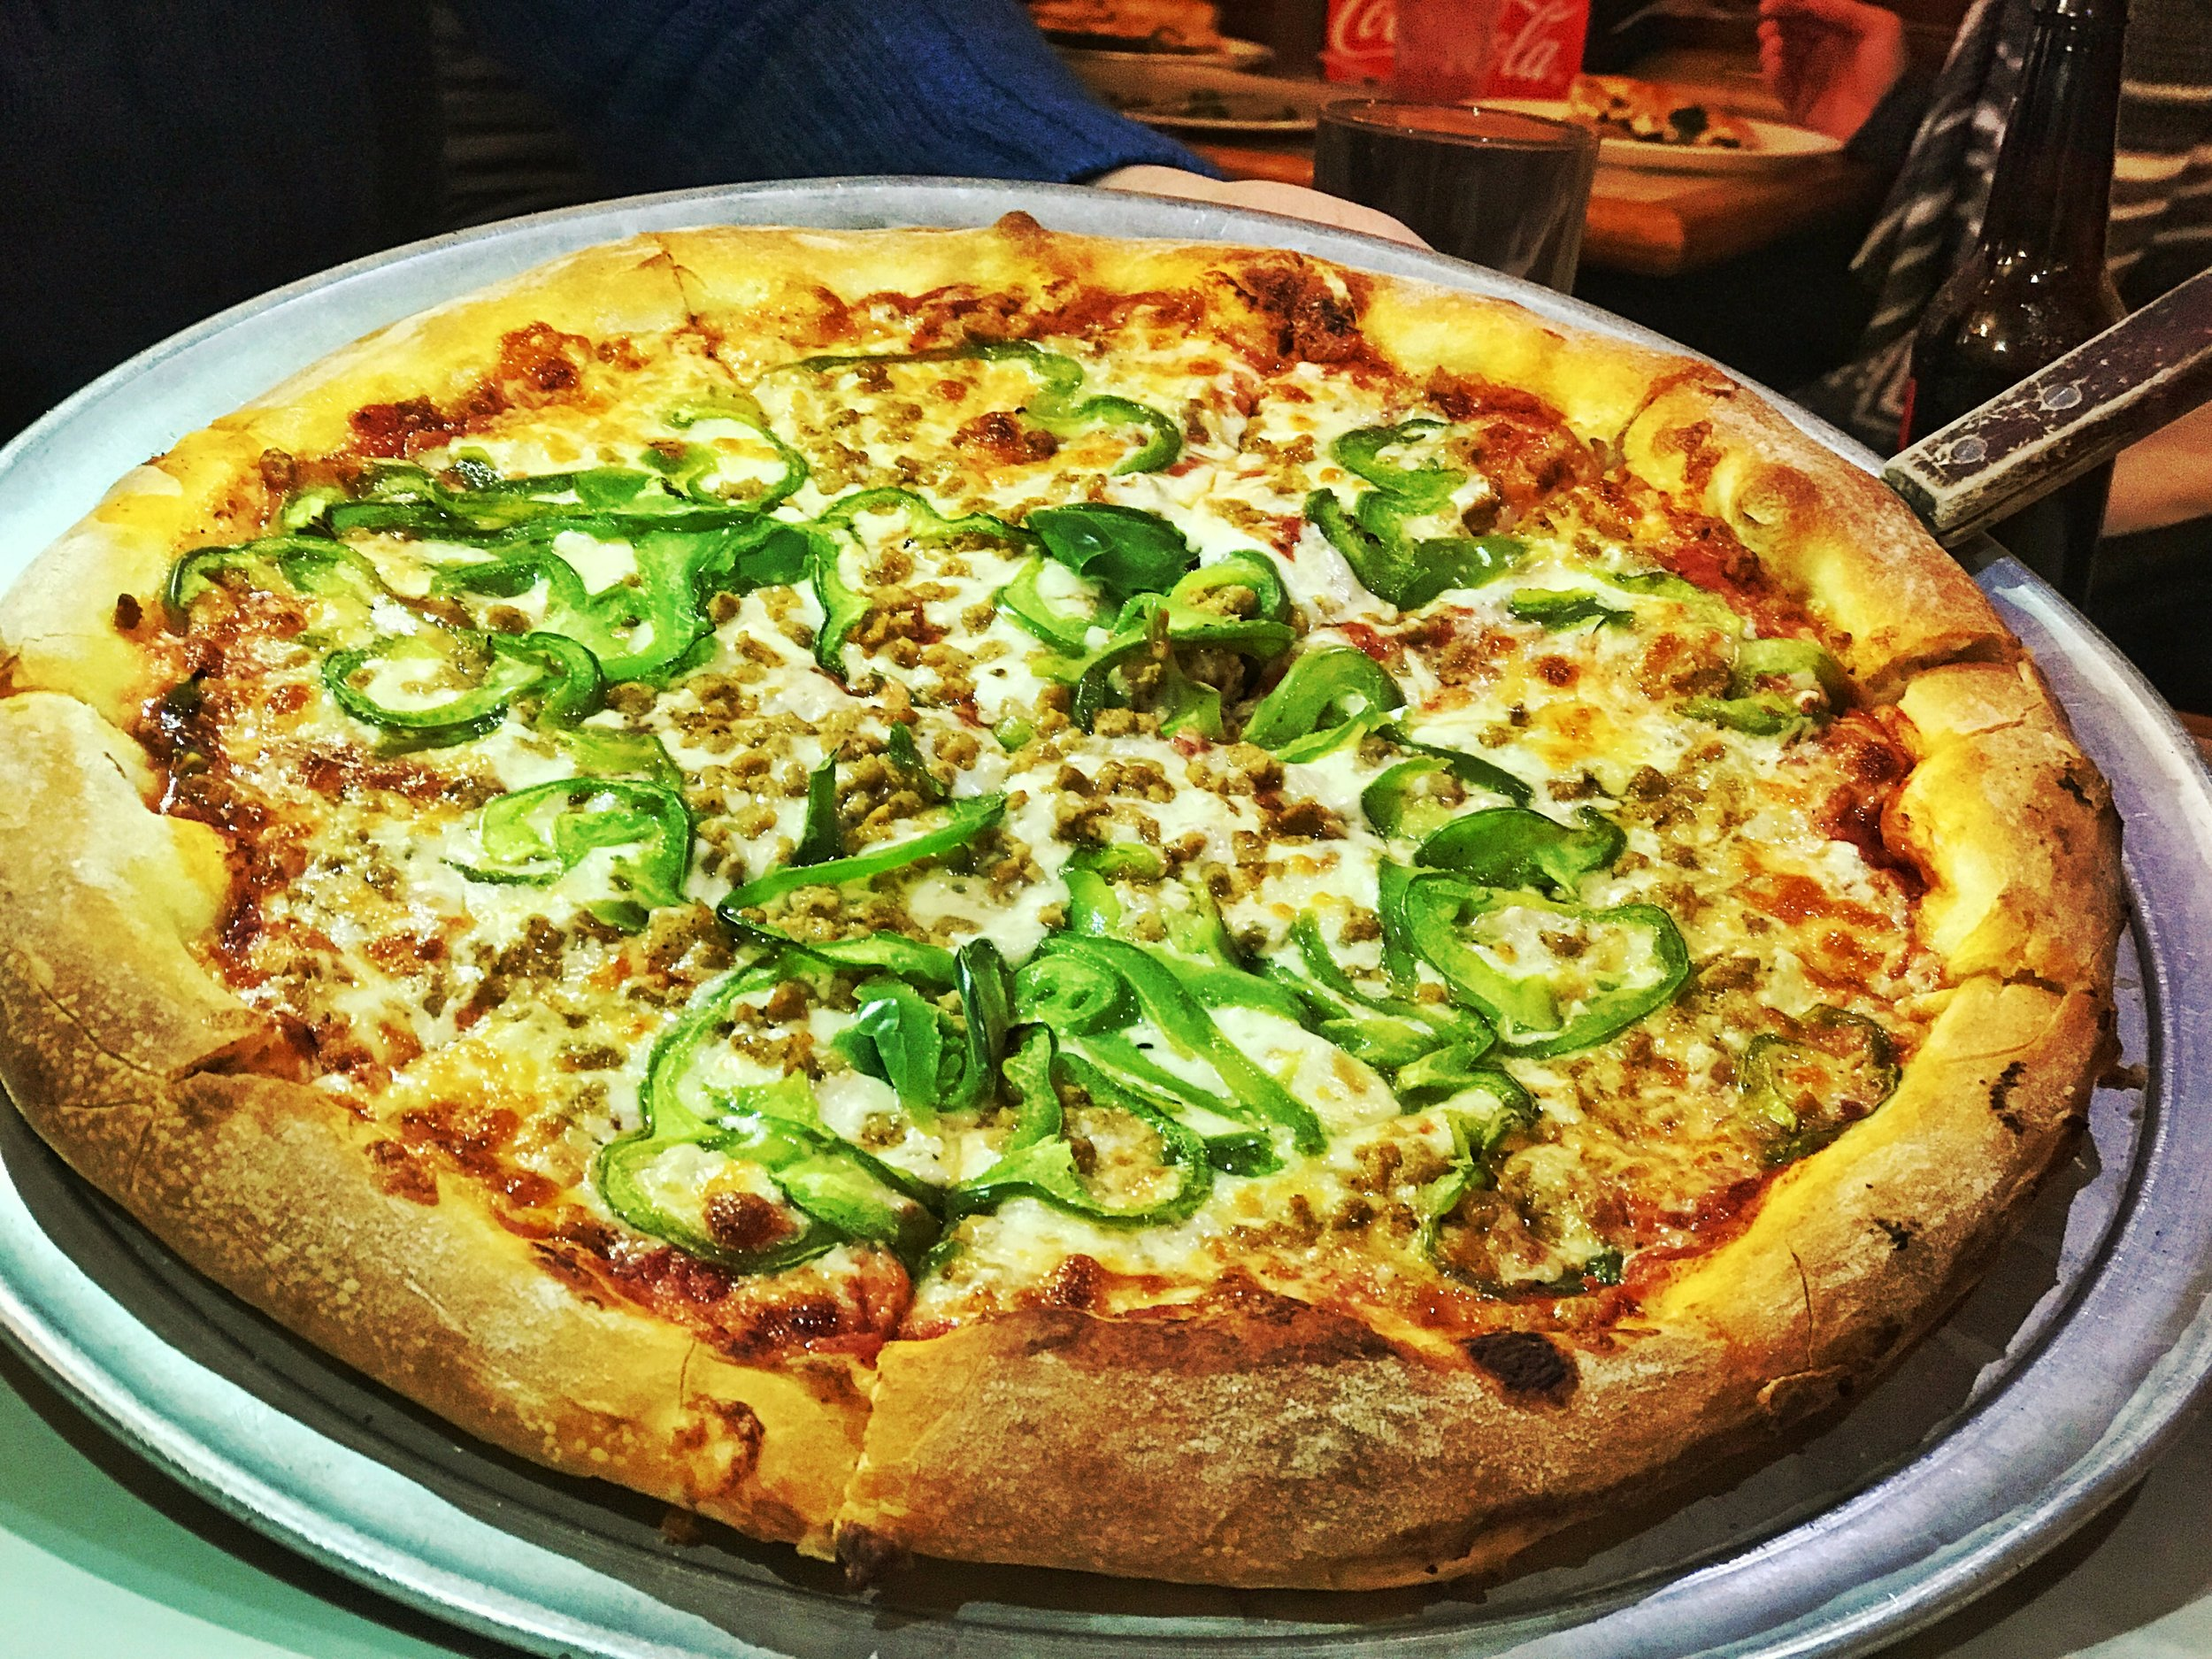 The classic sausage and green peppers pizza. This pizza was perfectly cooked, sturdy, and toppings evenly spread out.